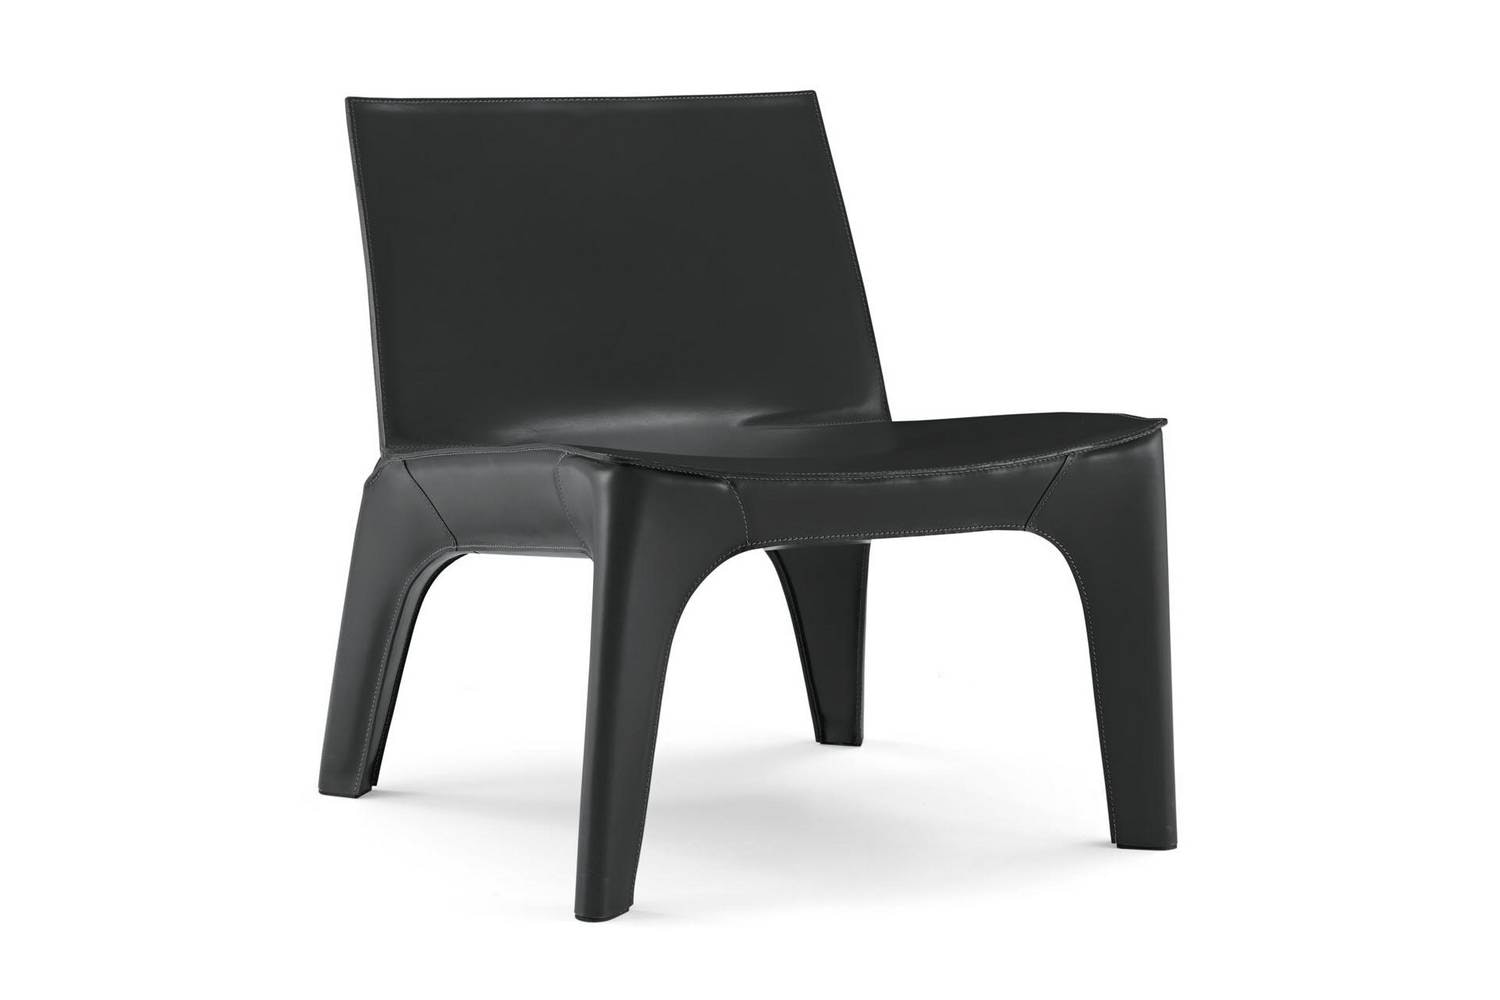 BB Armchair by Riccardo Blumer and Matteo Borghi for Poliform